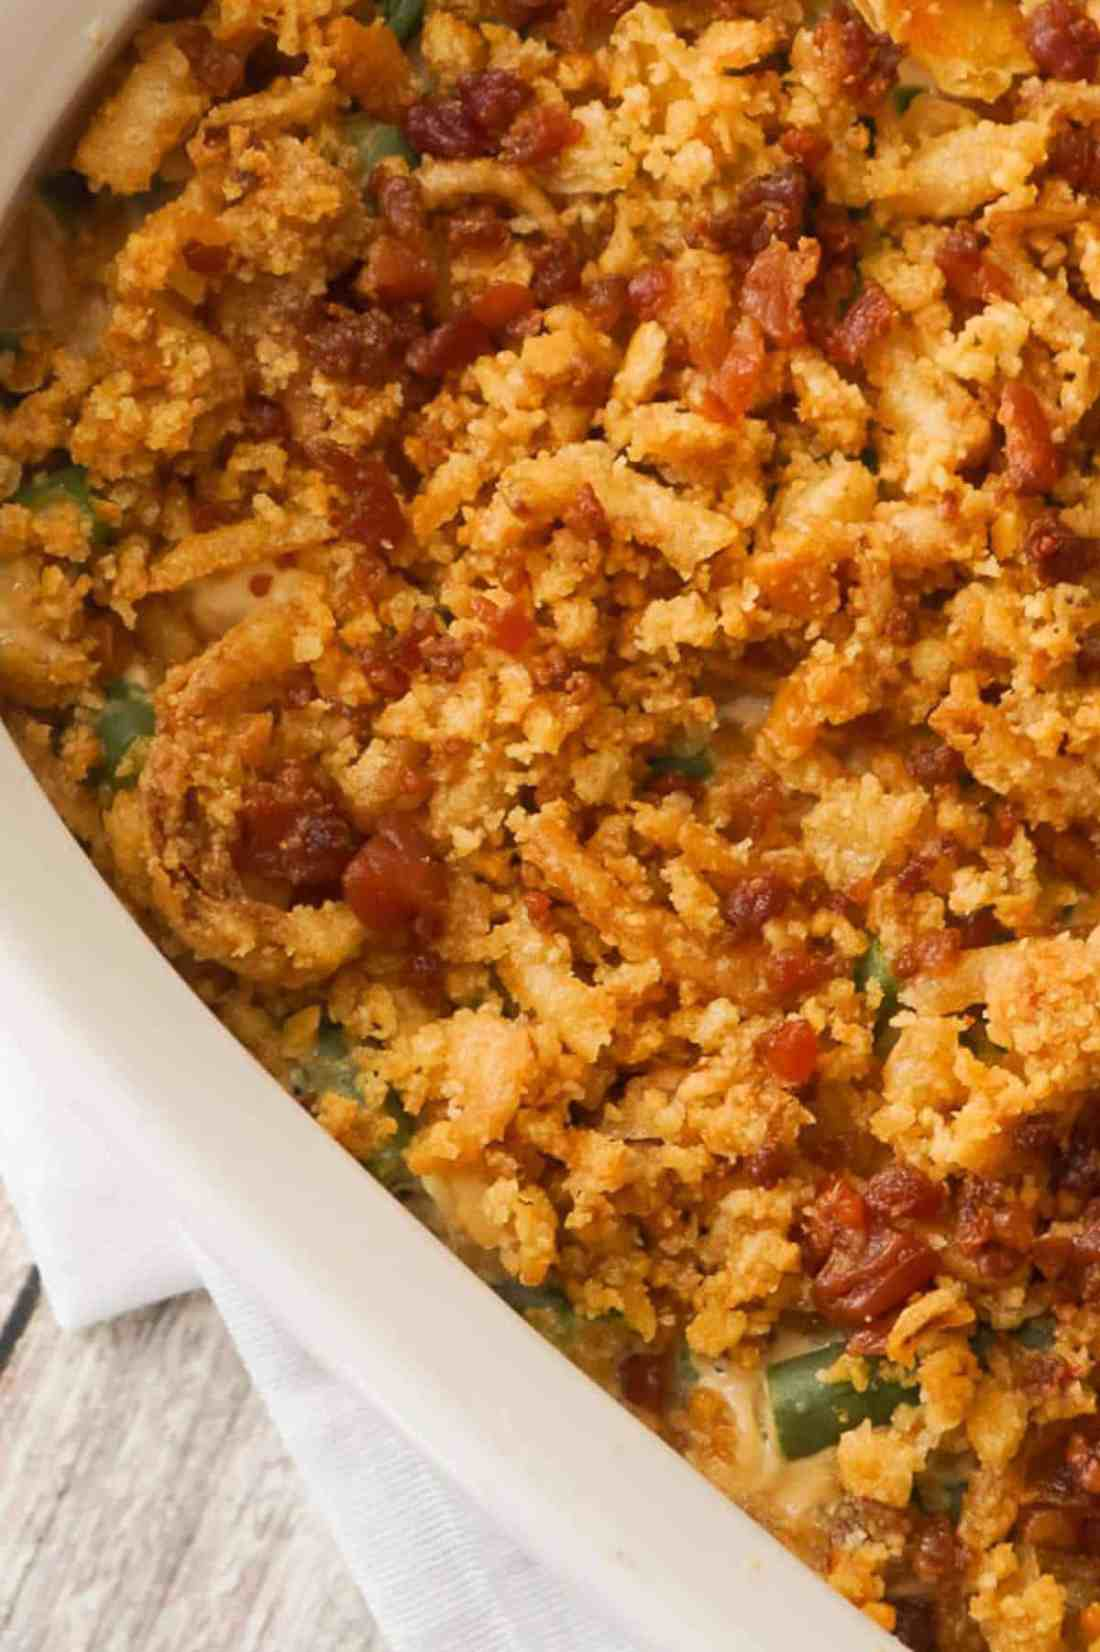 Cream Cheese and Bacon Green Bean Casserole is a holiday side dish recipe made with Lipton onion soup mix and topped with Ritz cracker crumbs, French's fried onions and crumbled bacon.